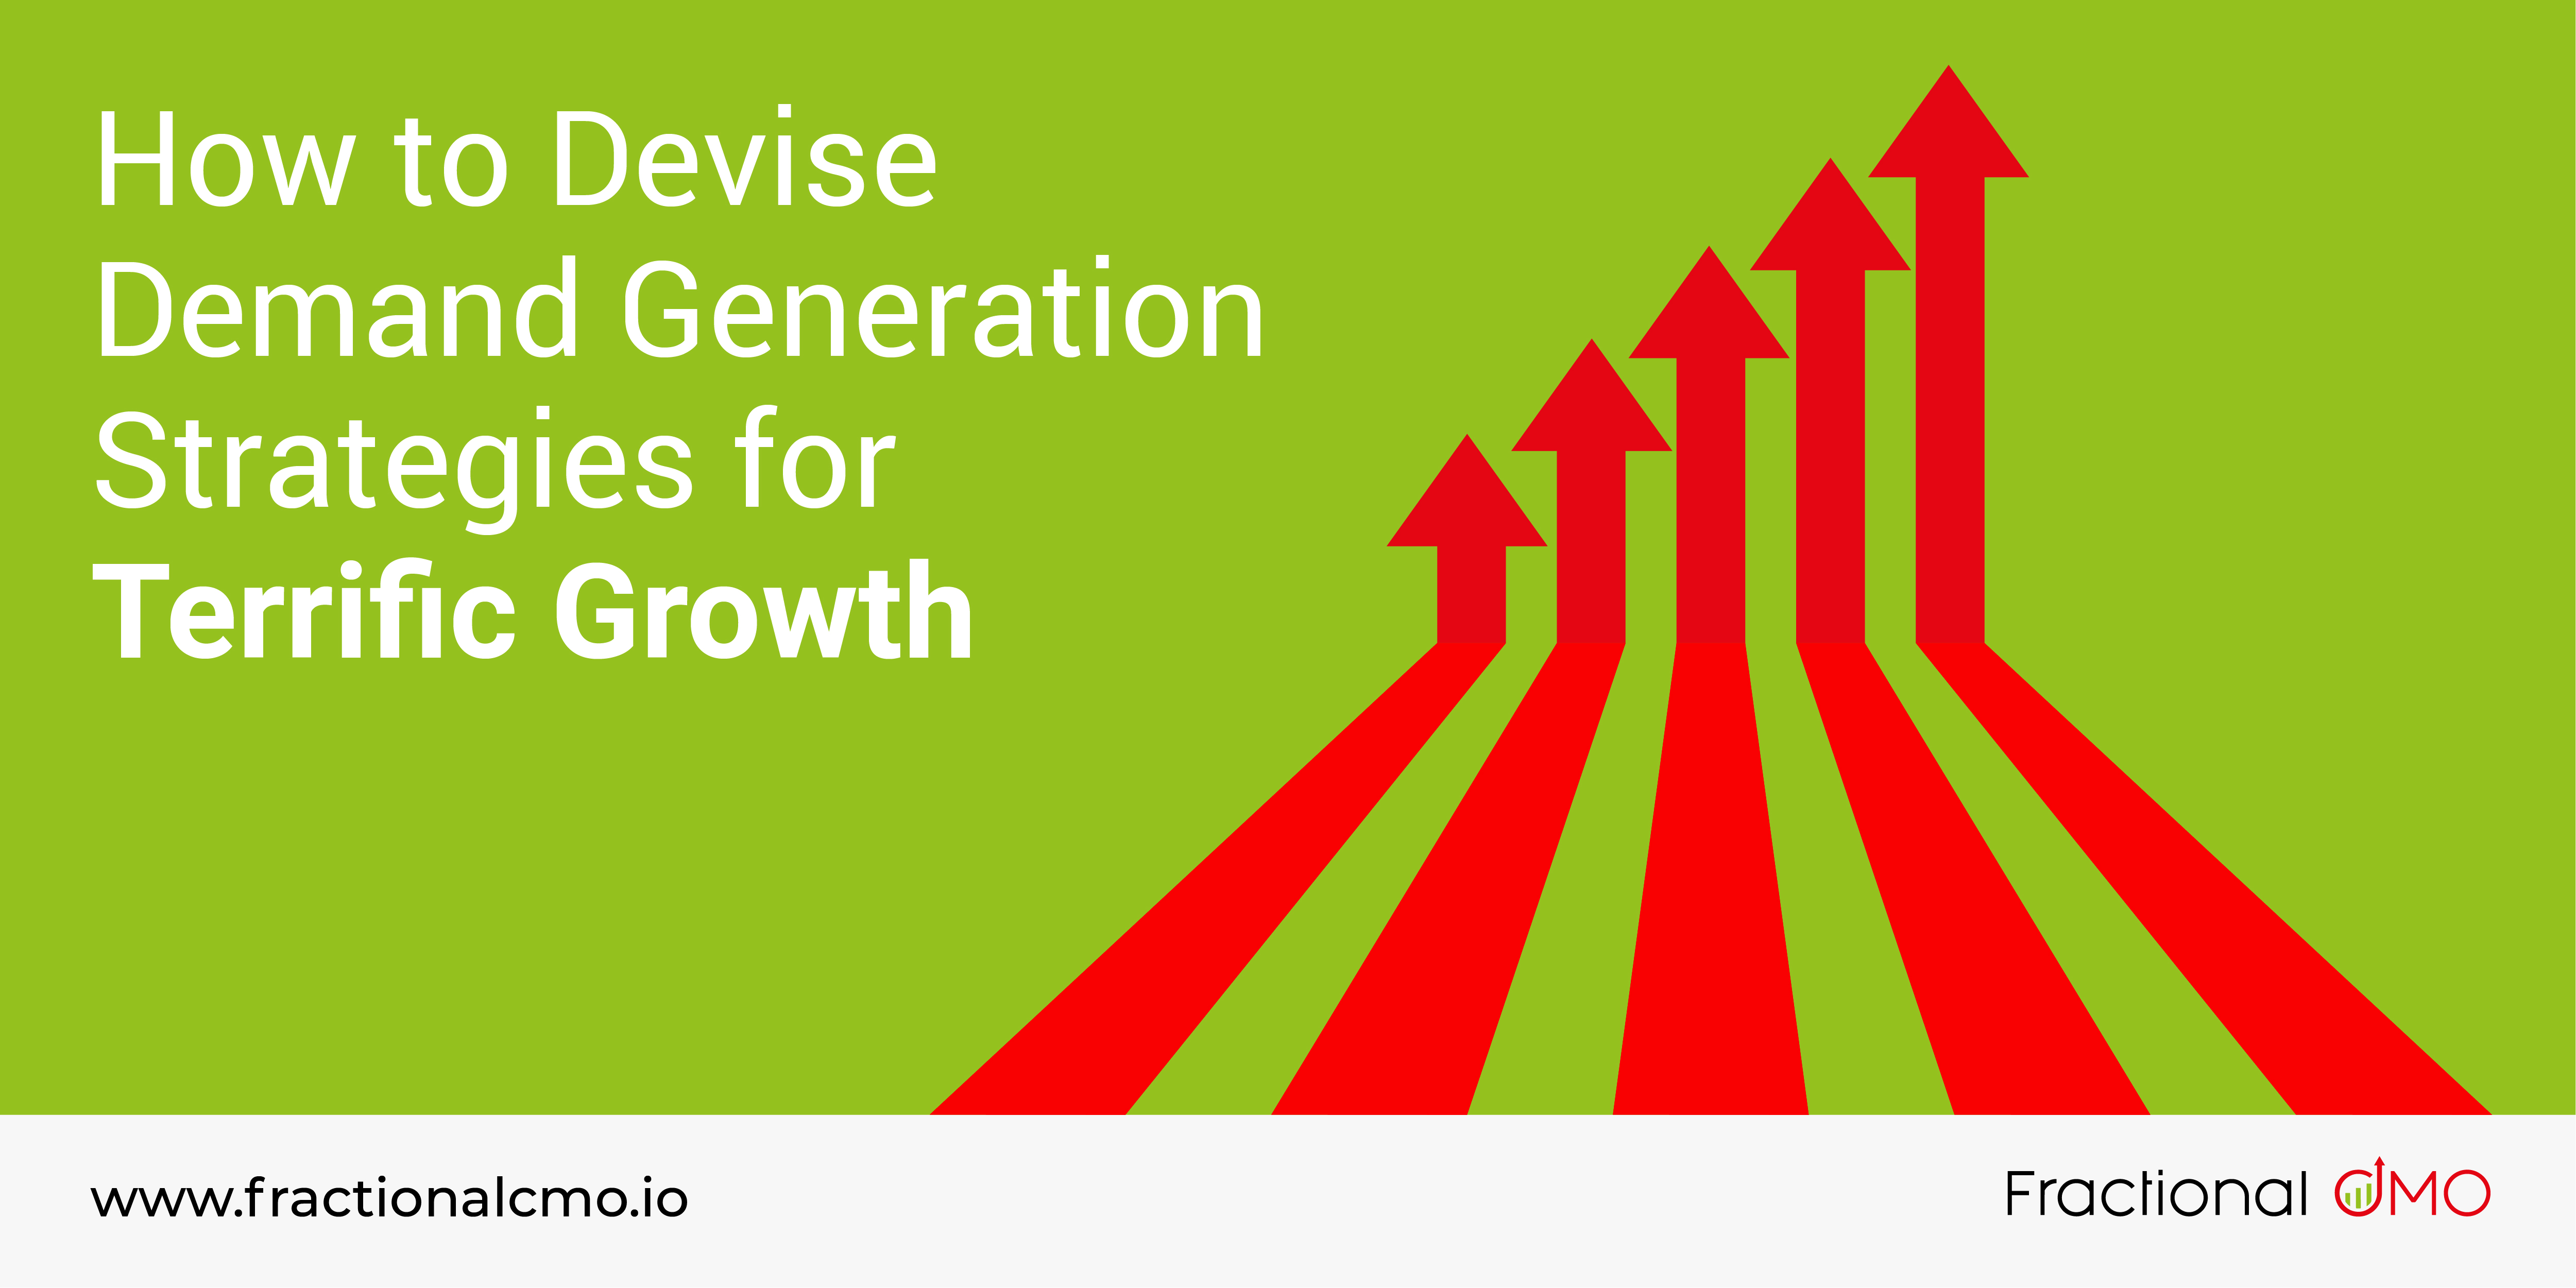 How to devise demand generation strategies for terrific growth